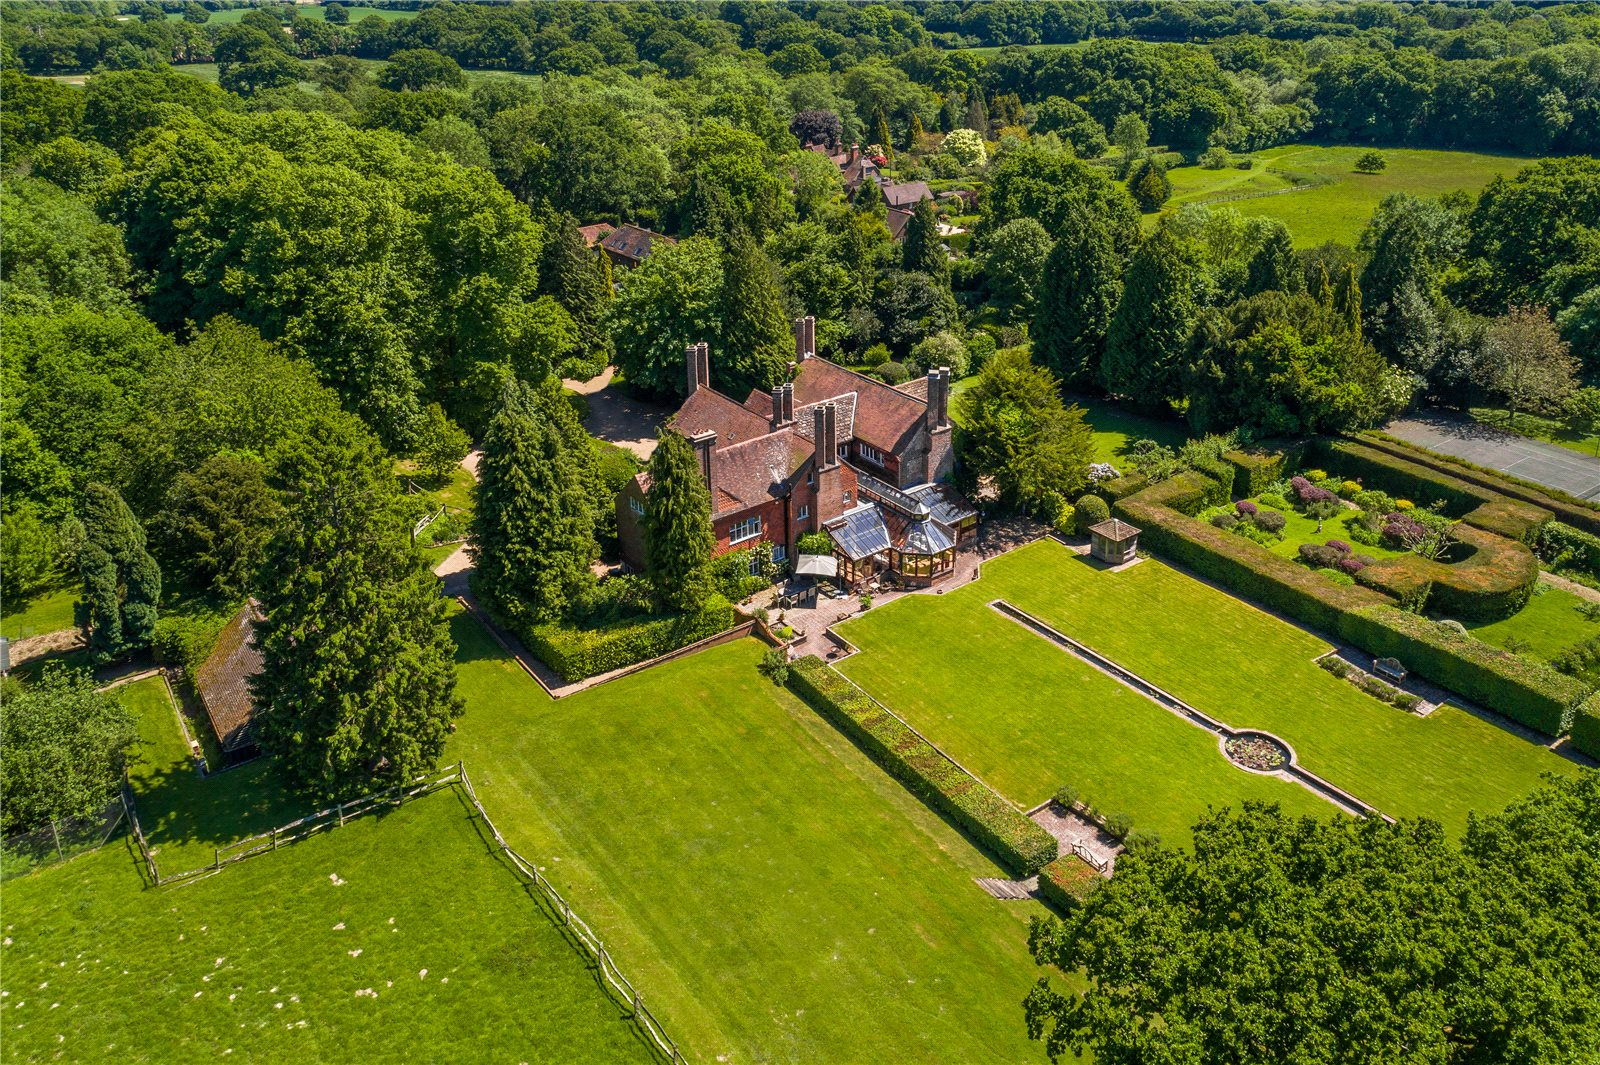 Maison unifamiliale pour l Vente à Cuckfield Road, Ansty, Haywards Heath, West Sussex, RH17 Haywards Heath, Angleterre